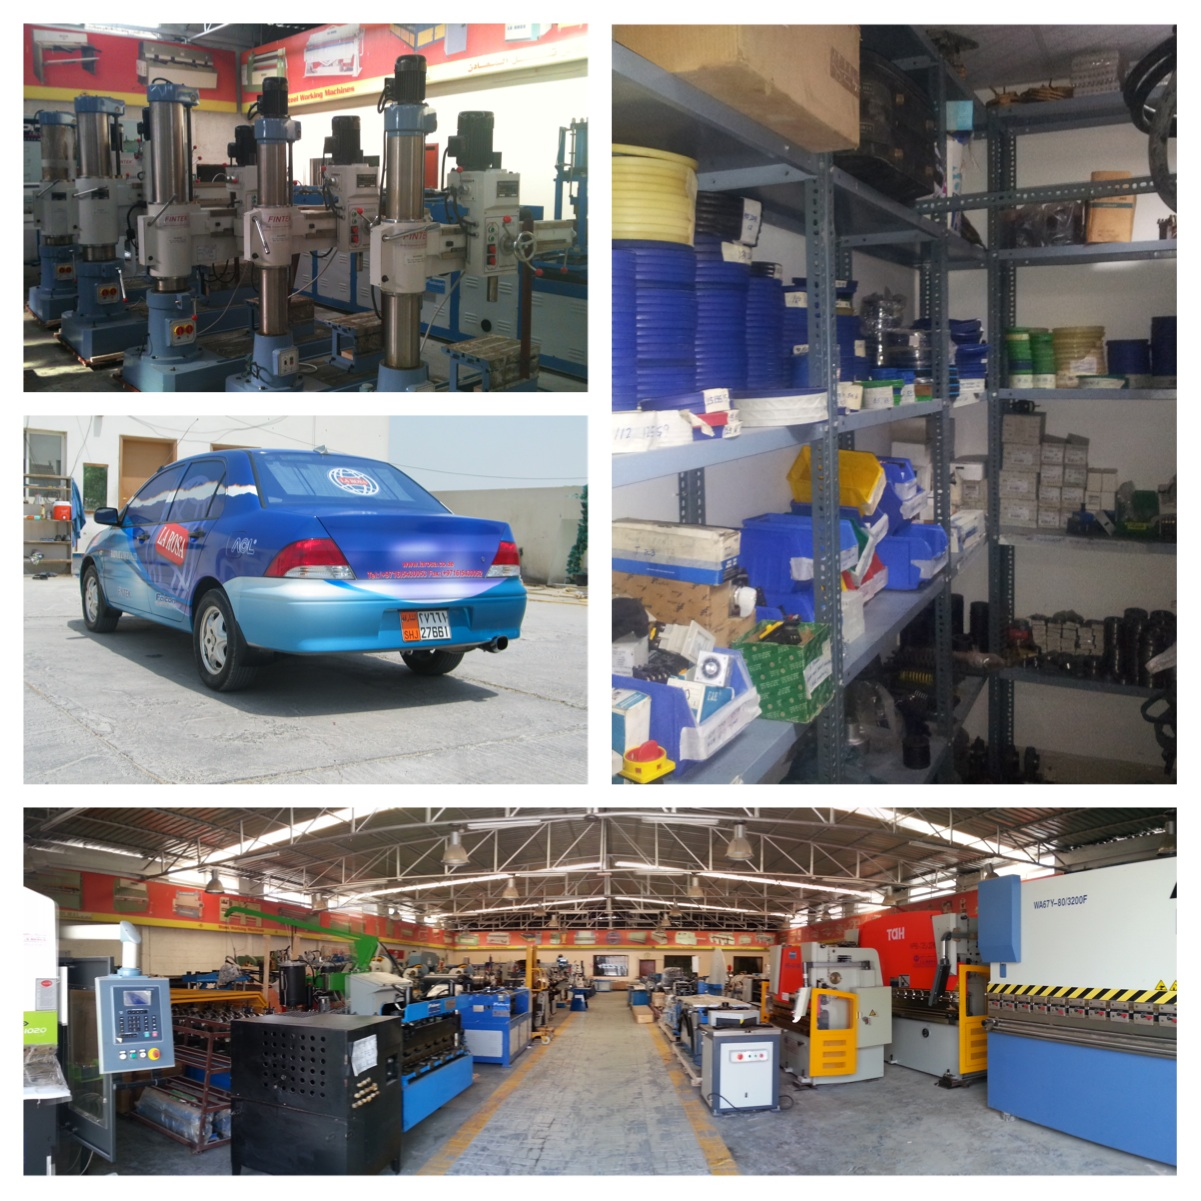 sparparts-and-showroom.jpg